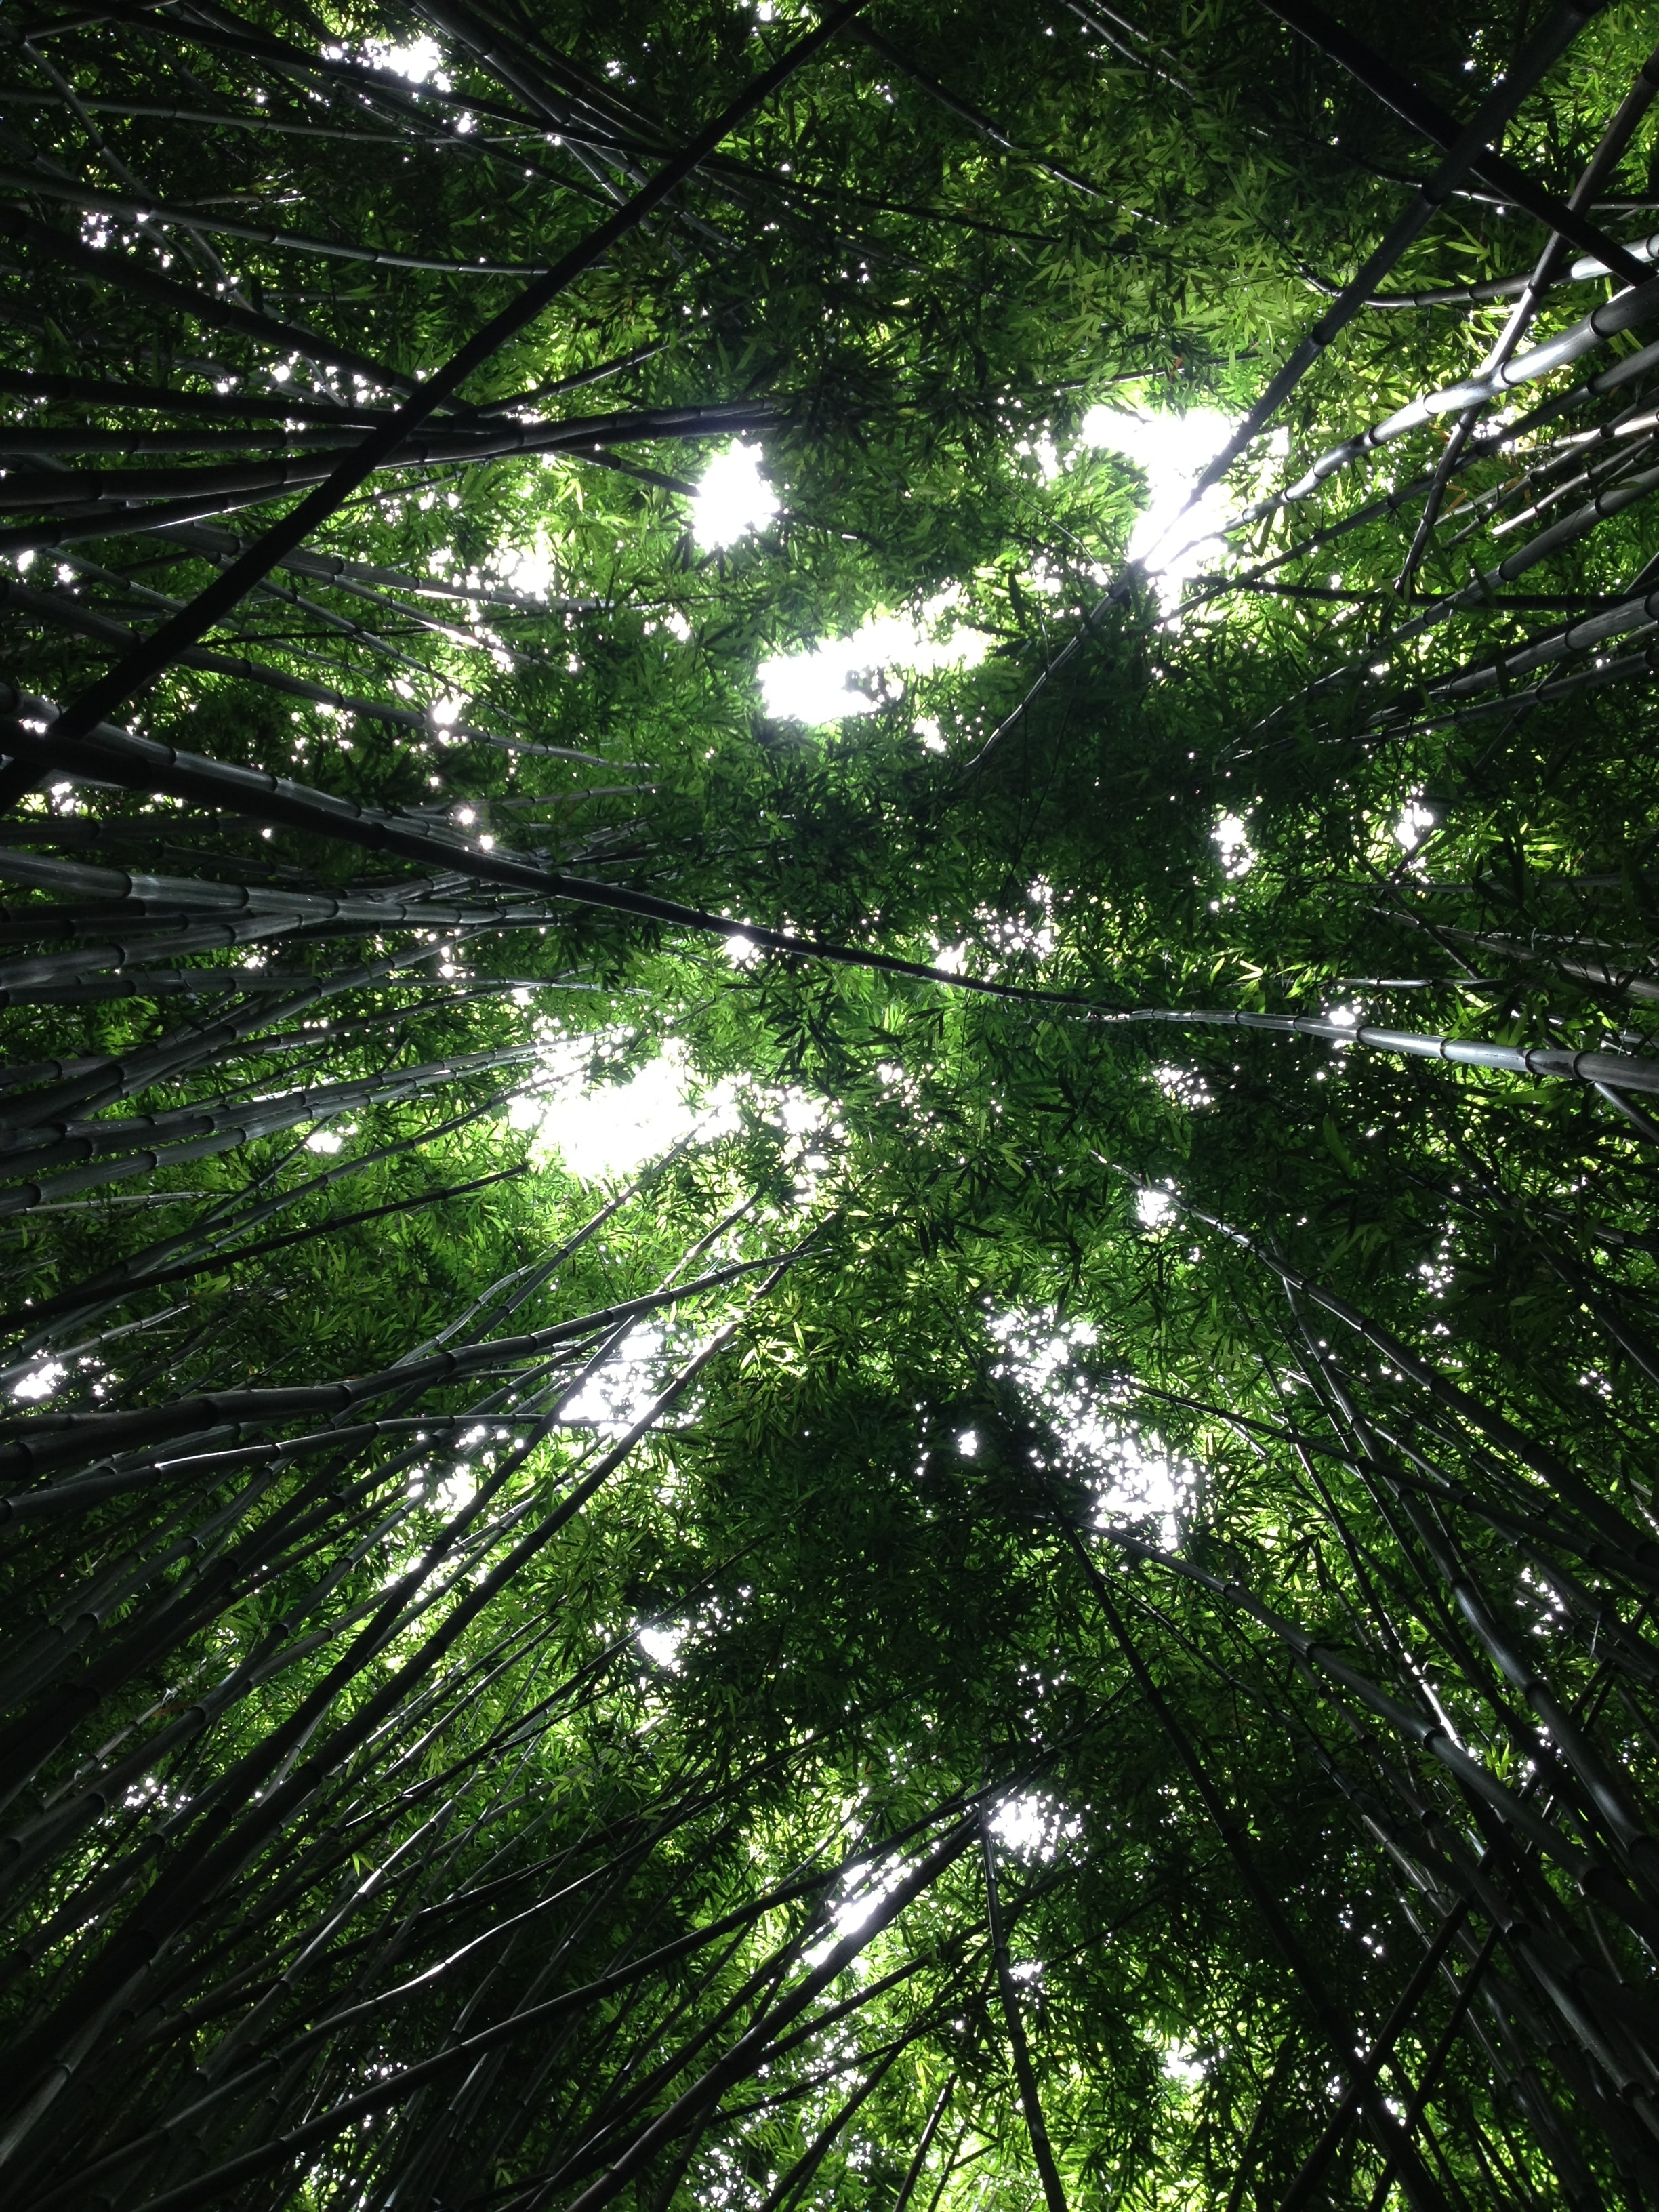 A ground-level shot of a thick canopy of bamboos